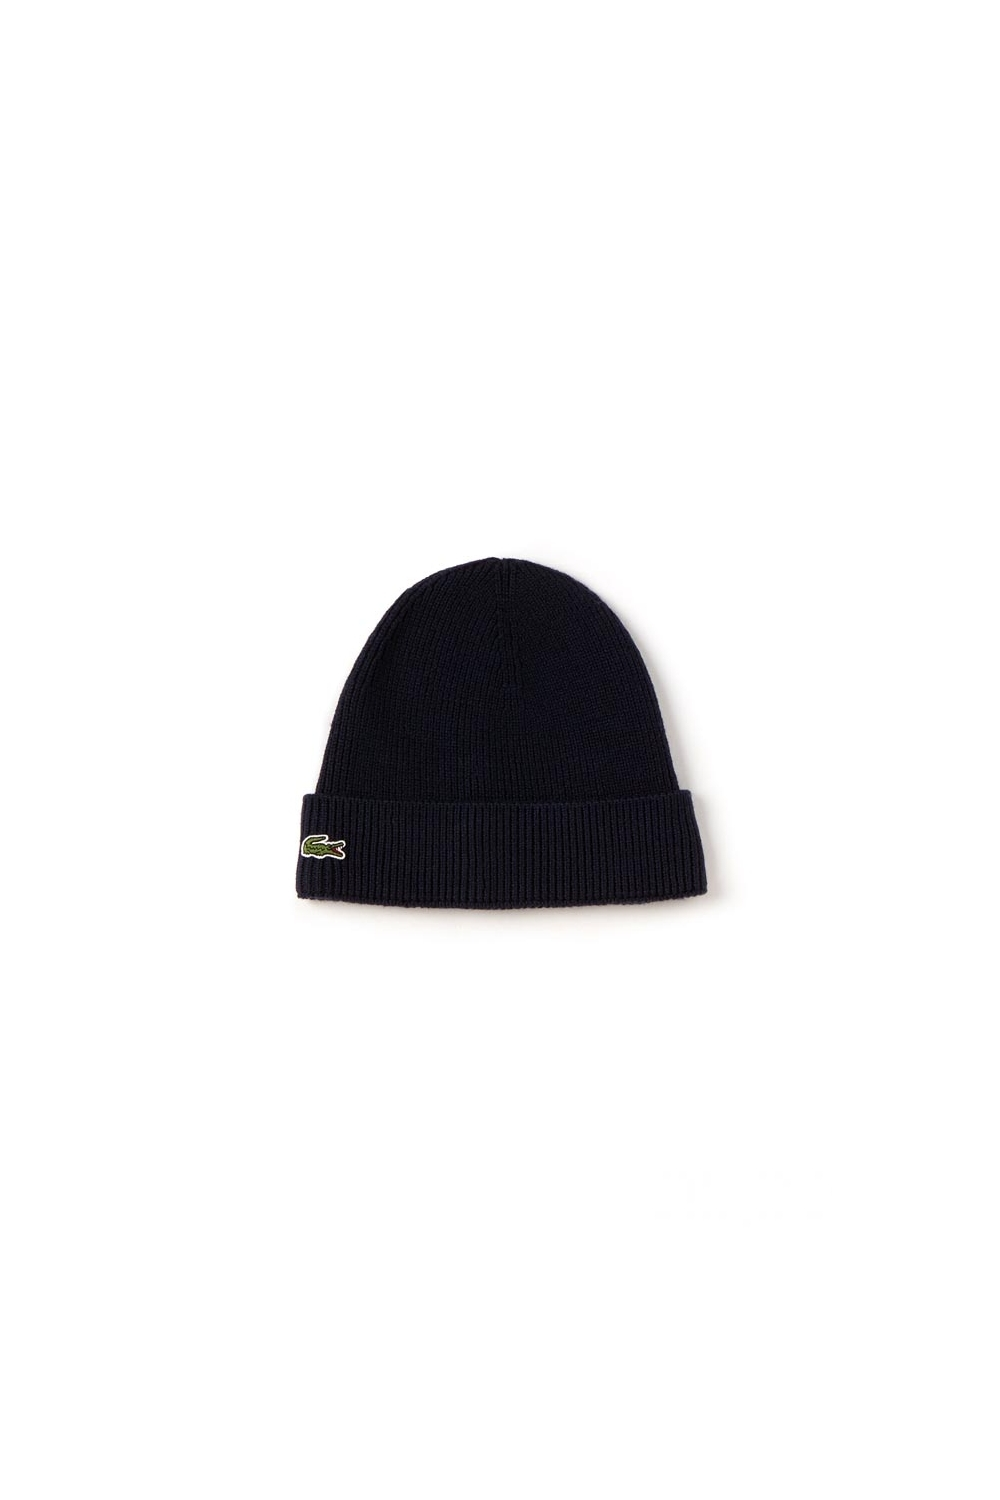 Lacoste Beanie Hat in Navy RB3502-00  b6833c4a8ccd